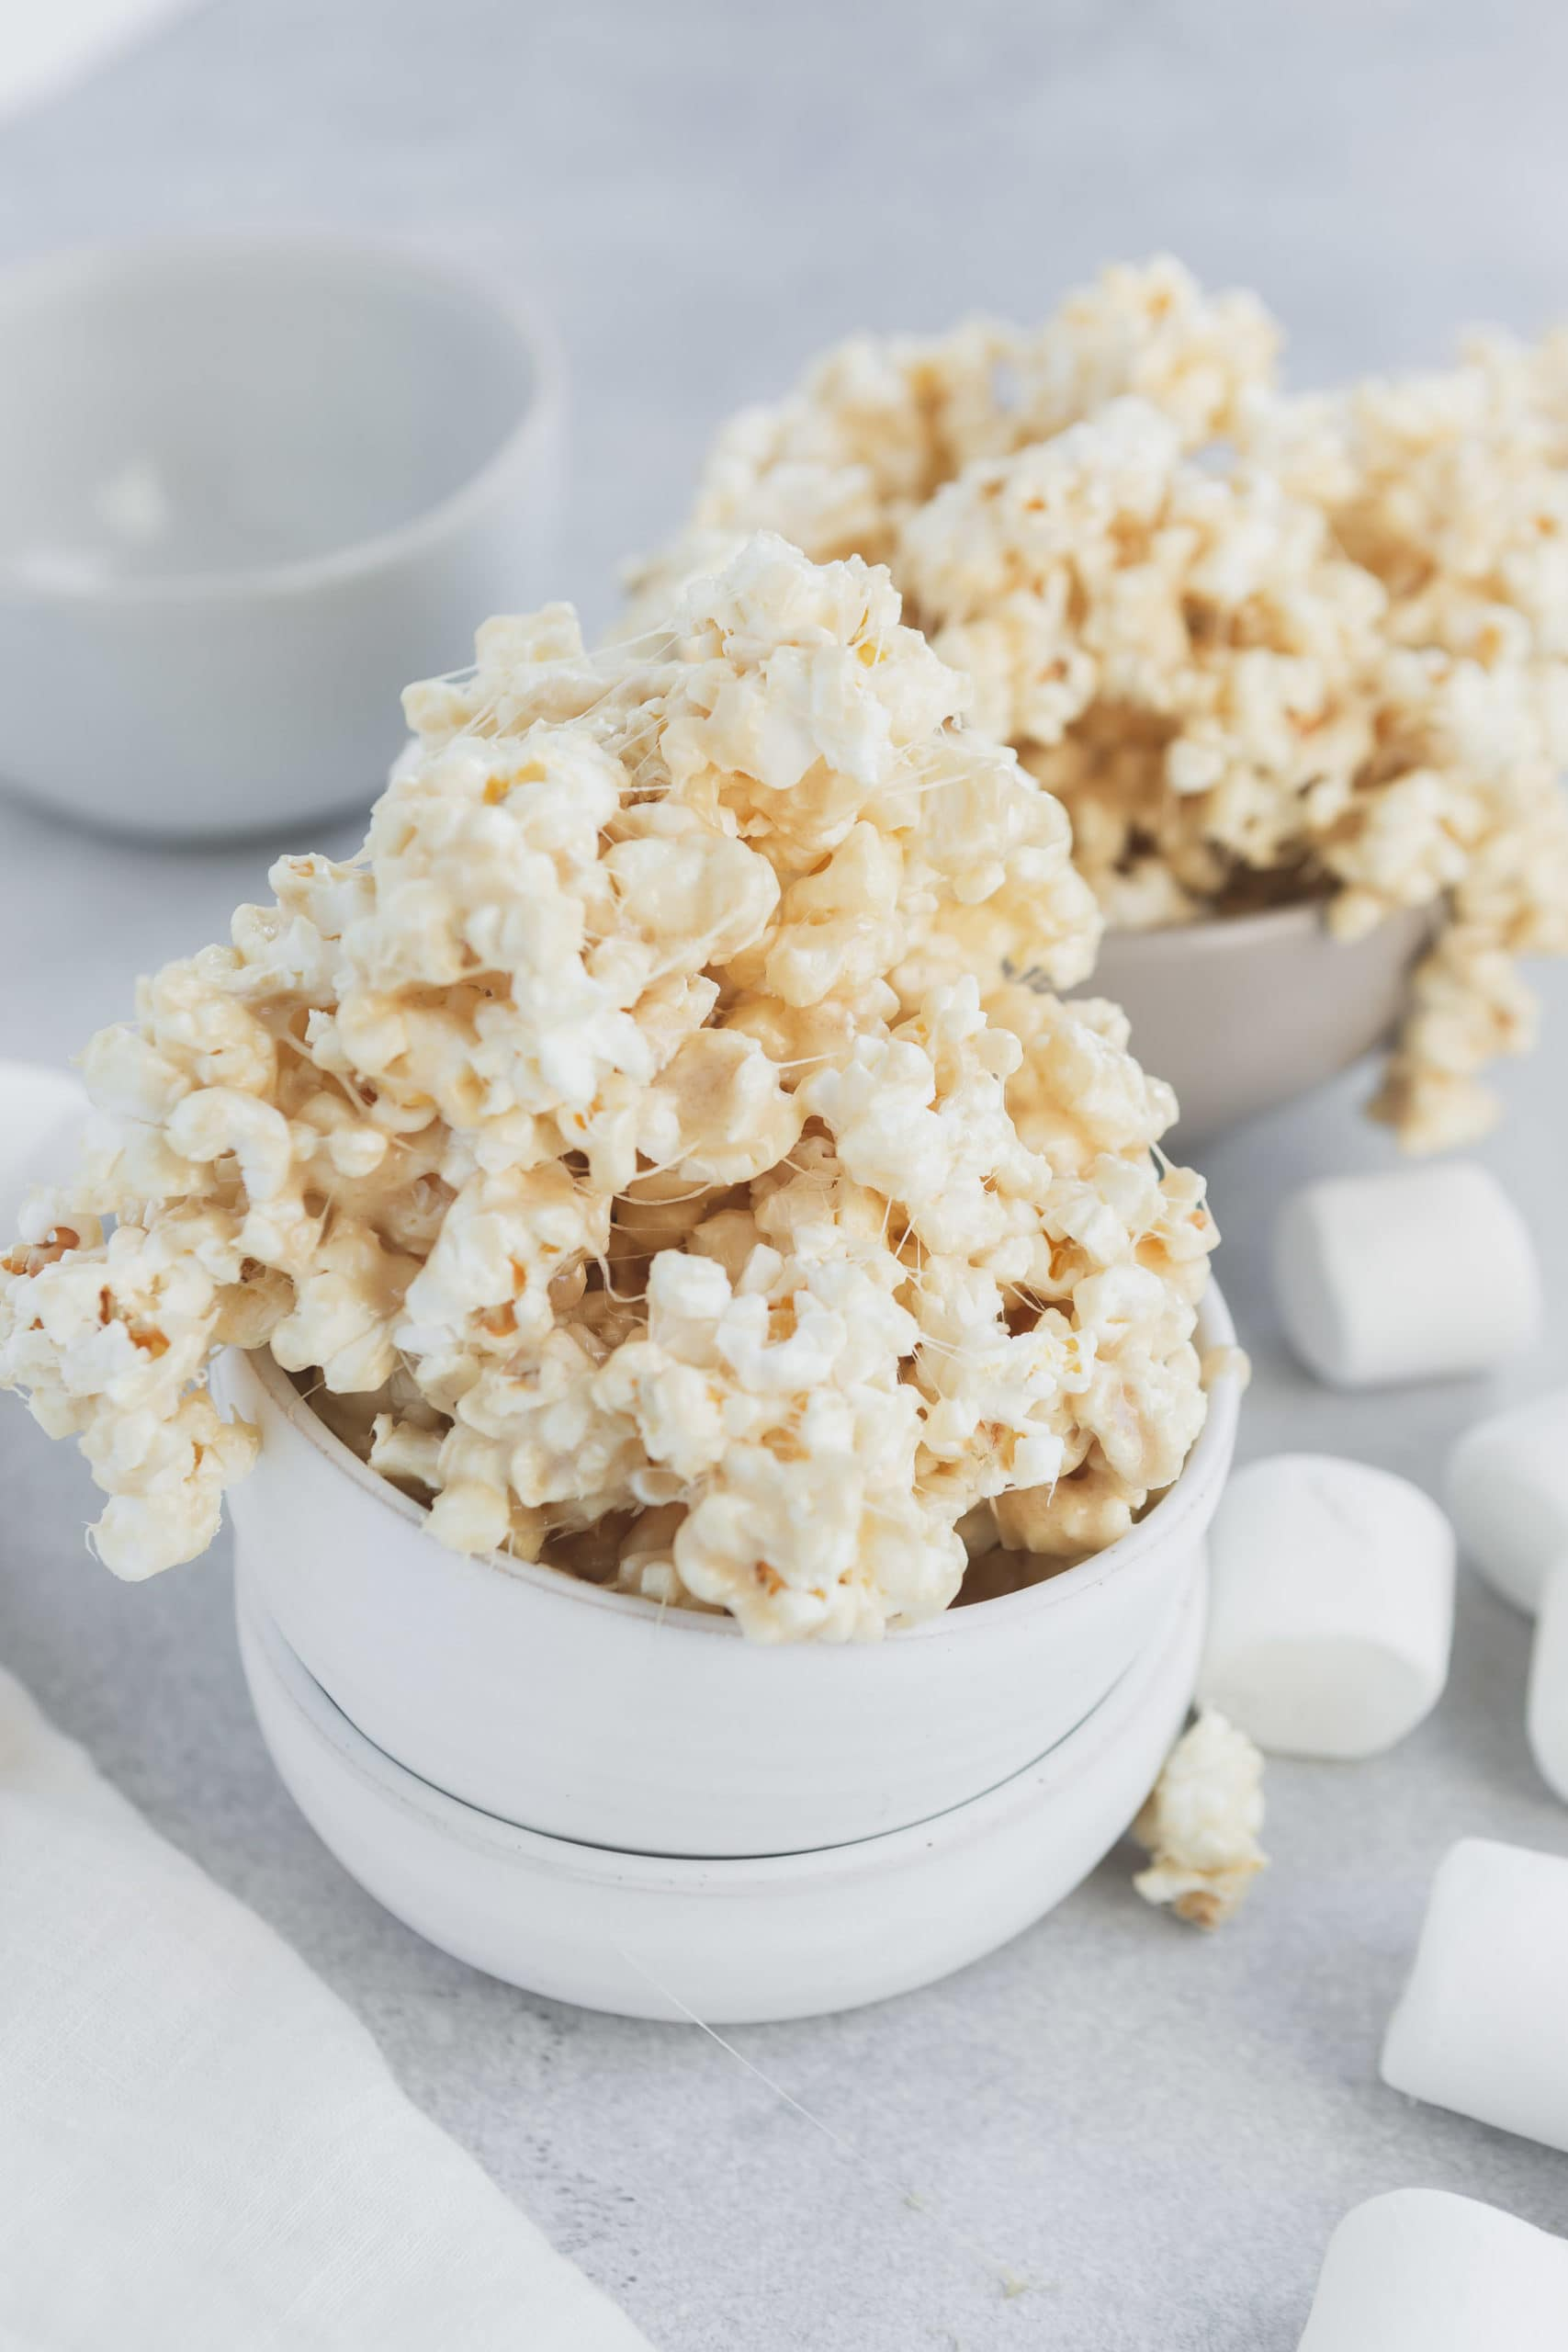 a photo of gooey marshmallow popcorn spilling out of a small white bowl with large marshmallows sprinkled all around and another bowl full in the background.